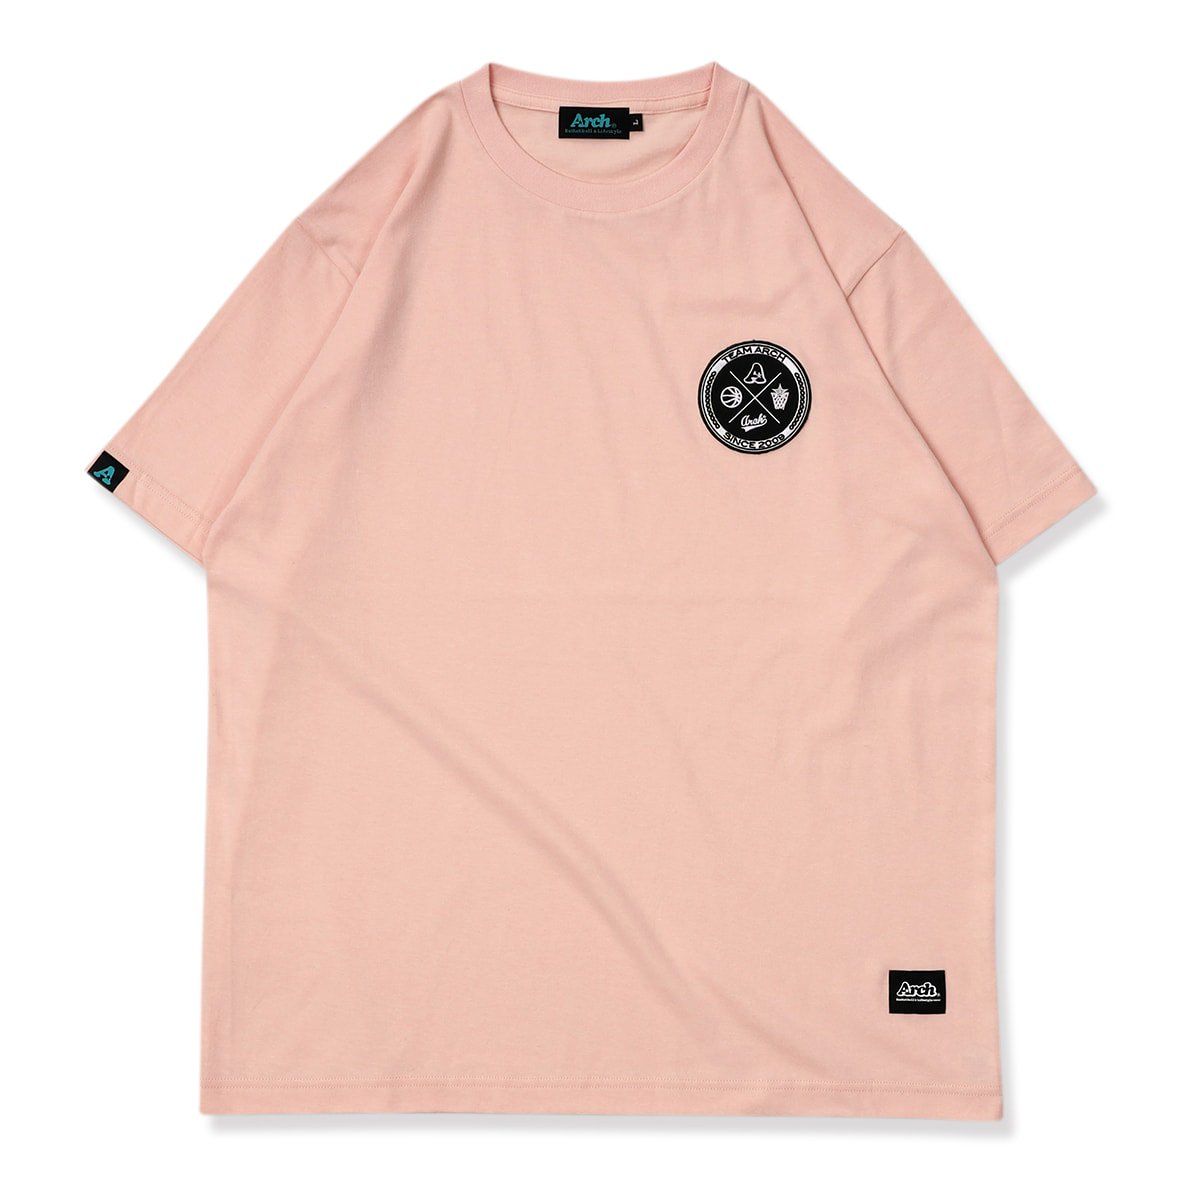 team arch patched tee【pink】